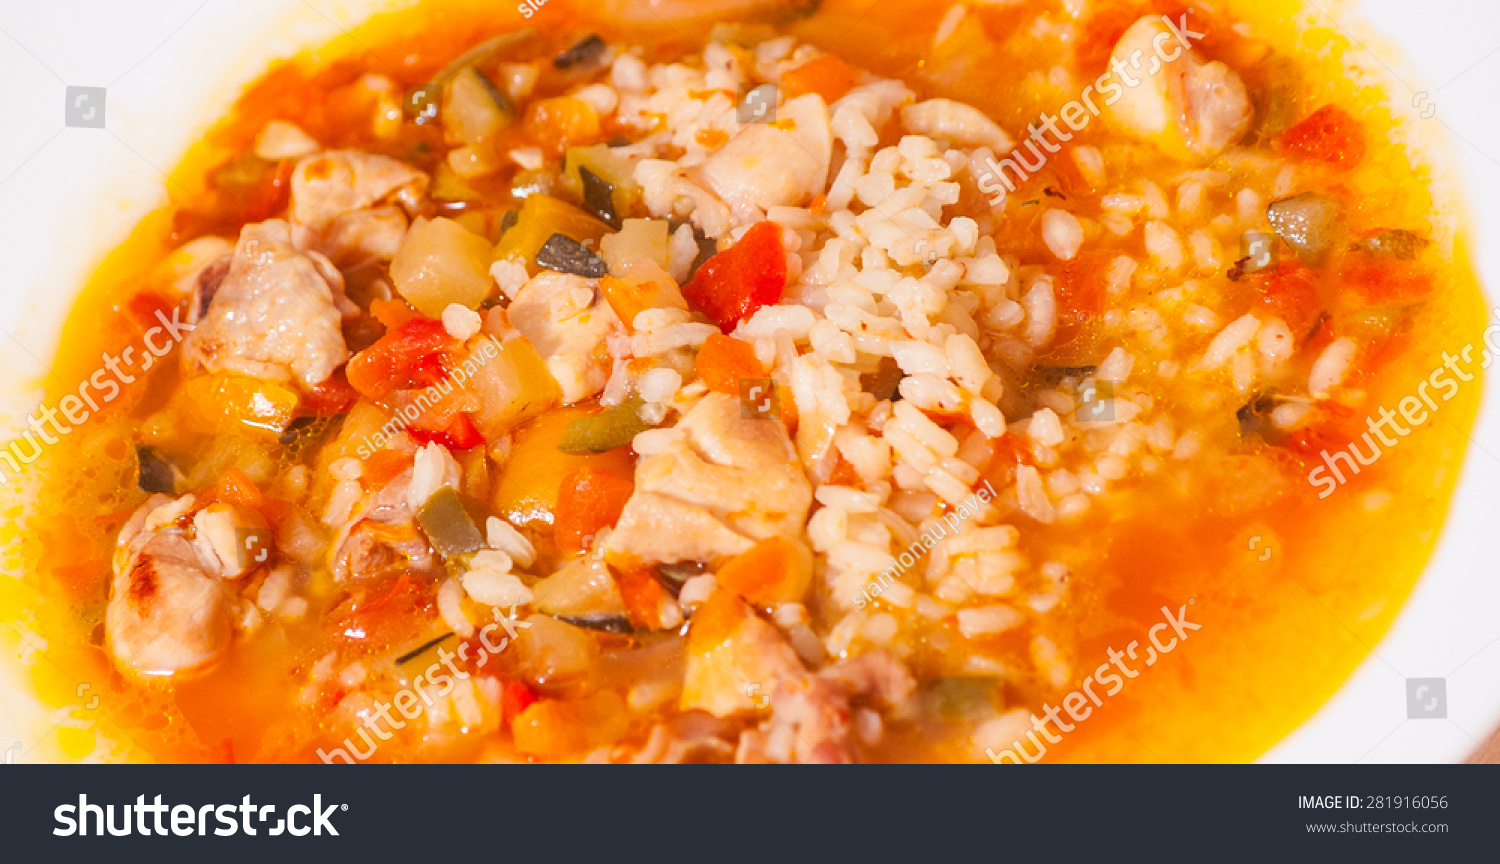 chicken soup with vegetables and rice #281916056